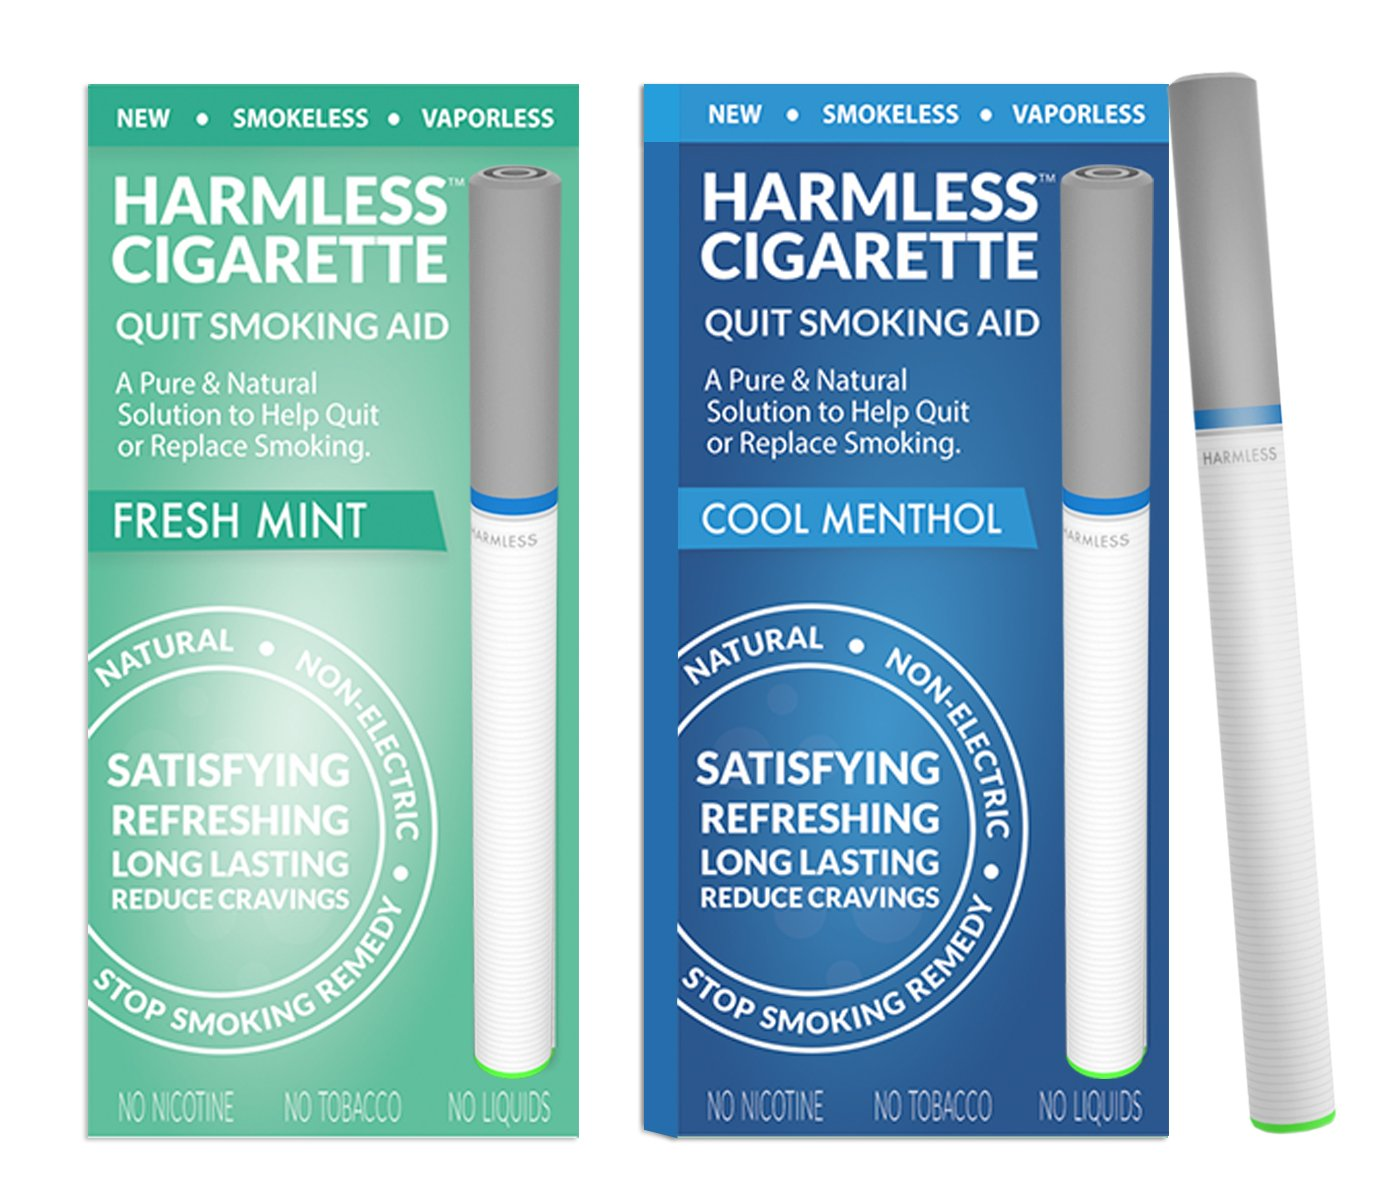 New | Quit Smoking Aid | Stop Smoking Remedy To Help Quit & Reduce Cravings | Natural & Therapeutic Quit Smoking Solution | Harmless Cigarette (2 Pack, Variation Set -, Fresh Mint / Cool Menthol)